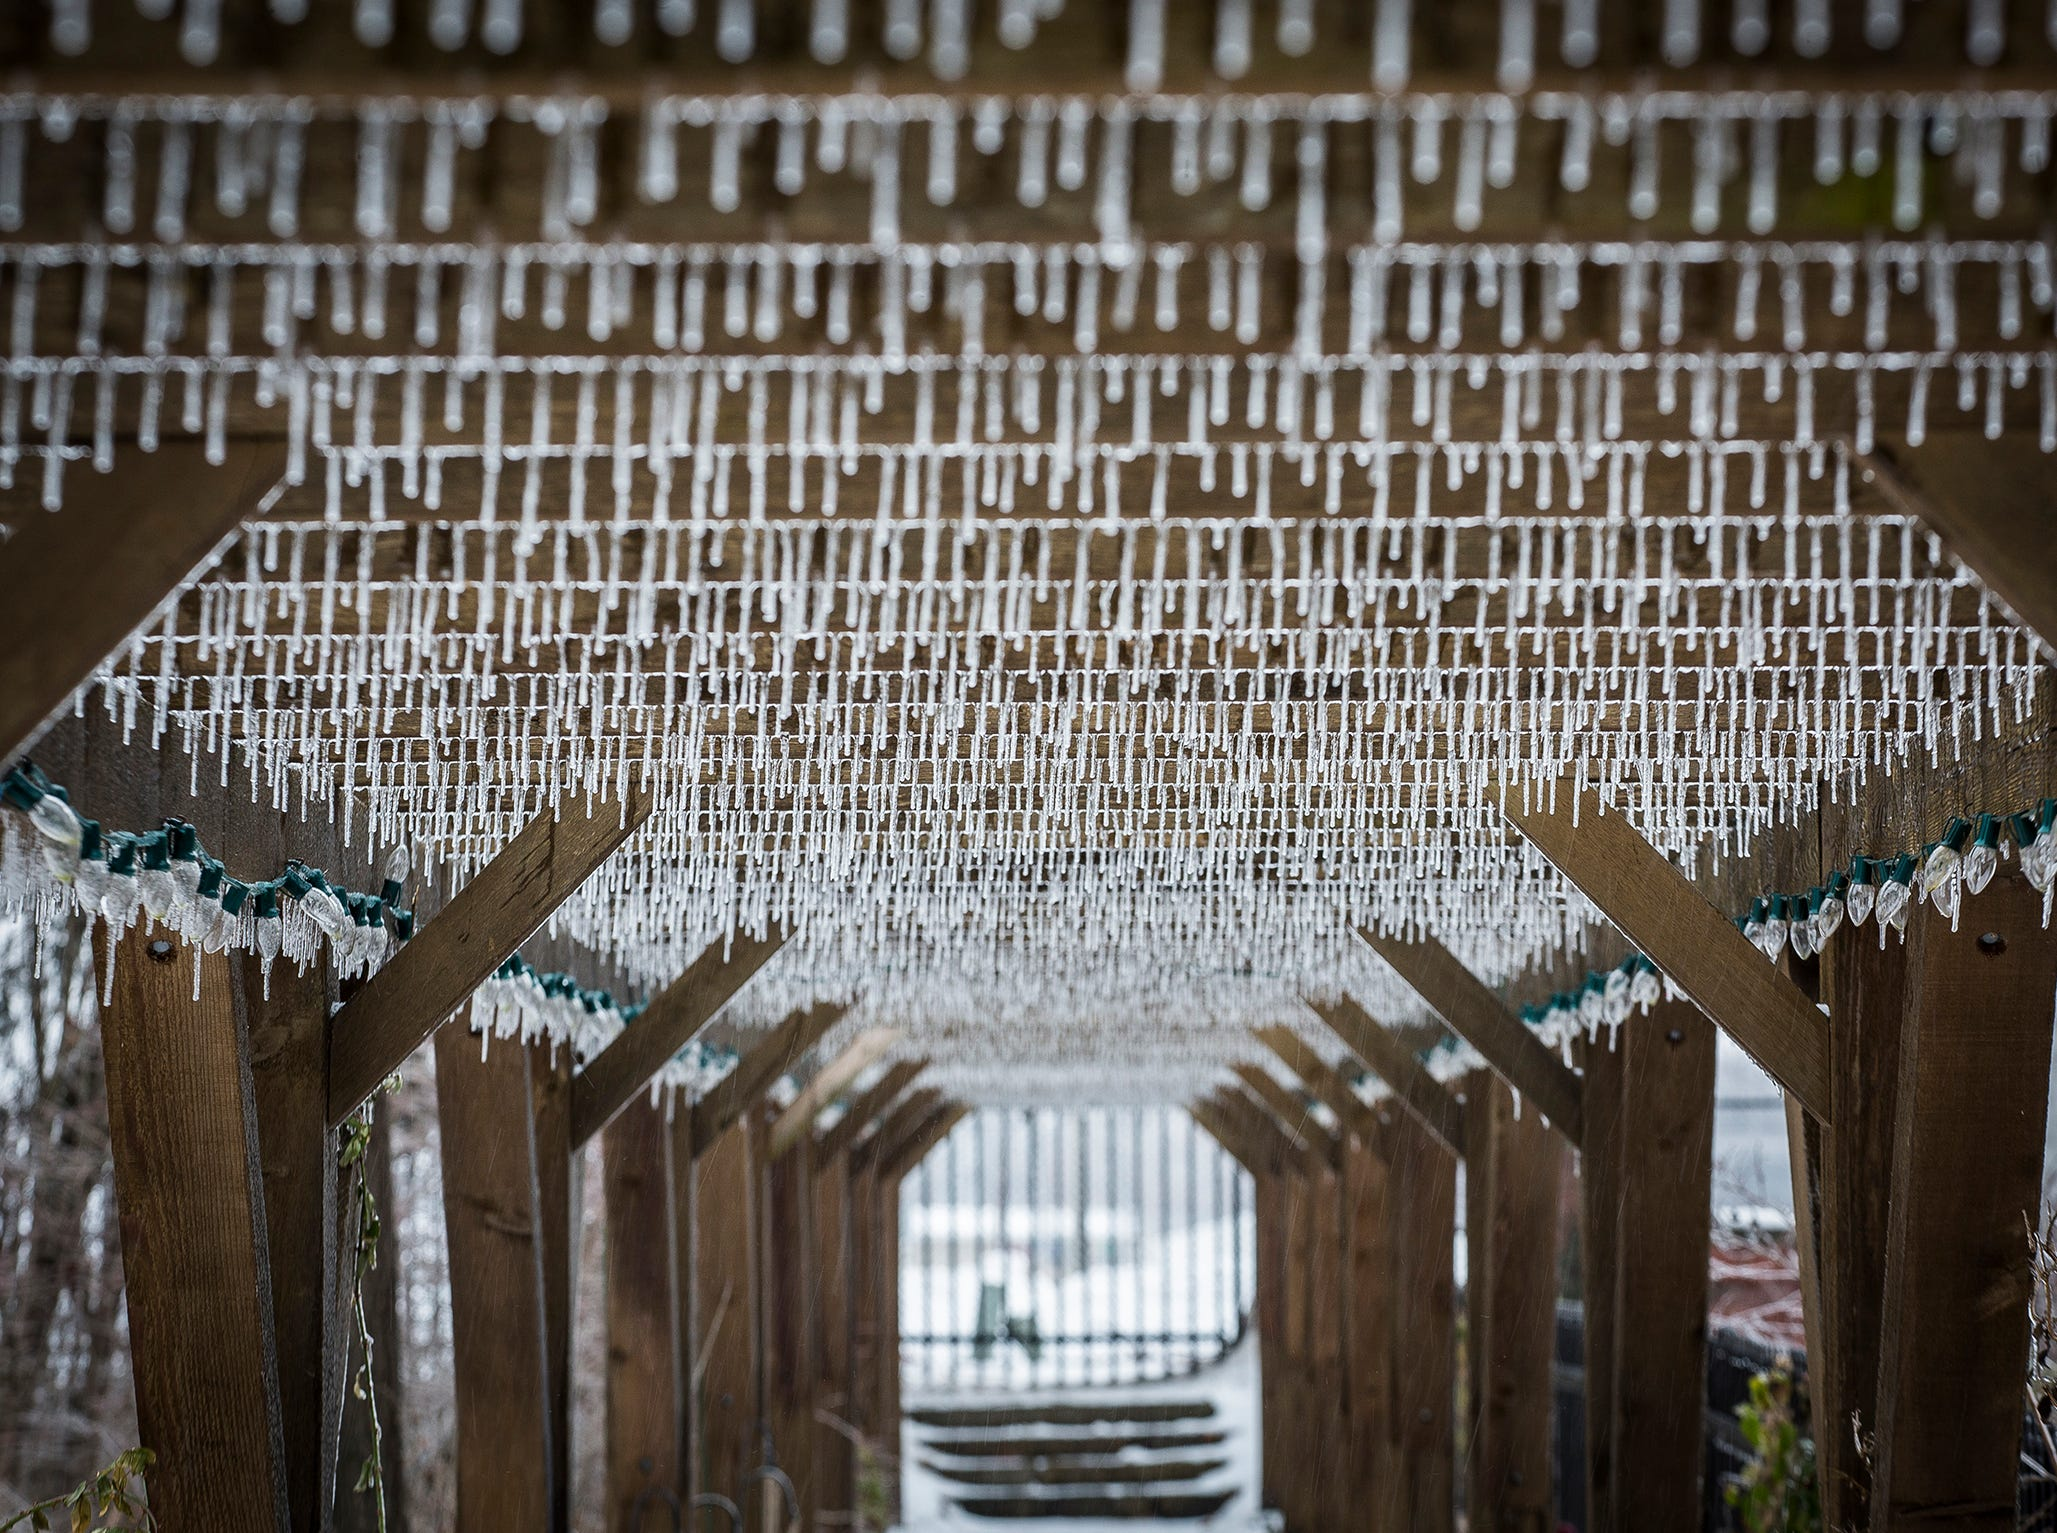 Thousands of icicles form above a walkway at Minnetrista following a downpour of sleet Saturday morning.